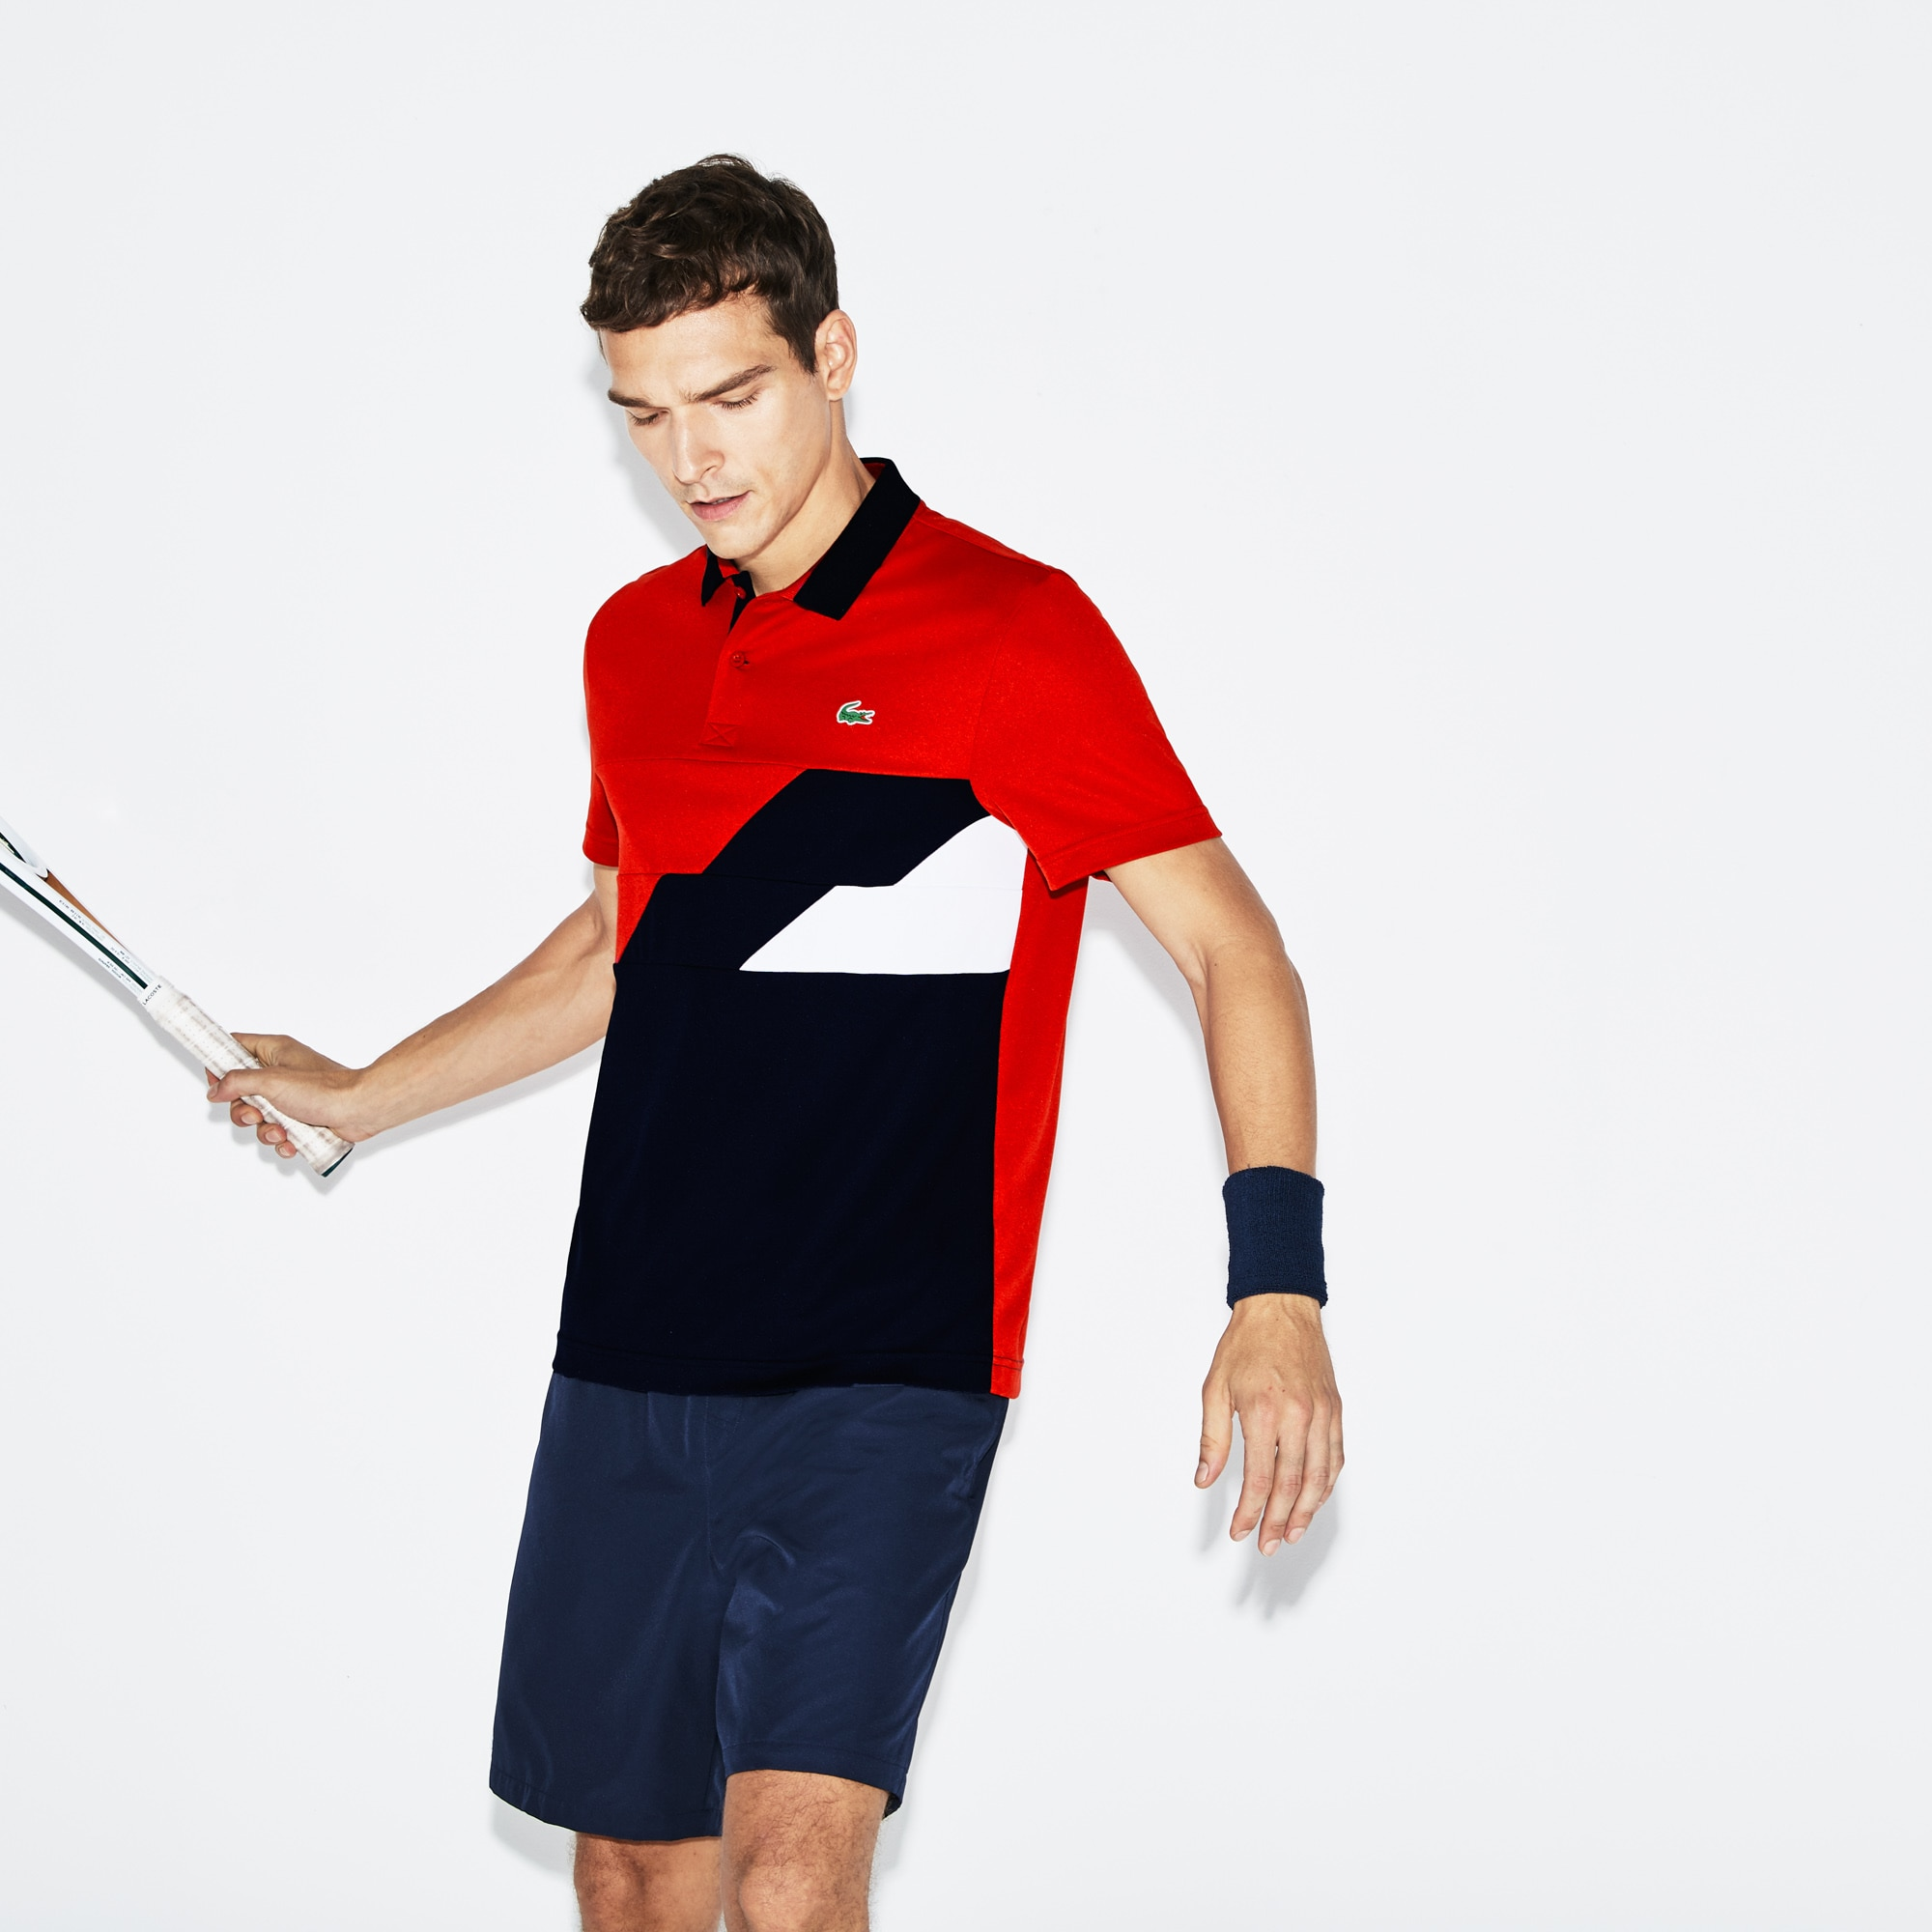 3c44341f80 Men's Lacoste SPORT Colourblock Bands Technical Piqué Tennis Polo ...